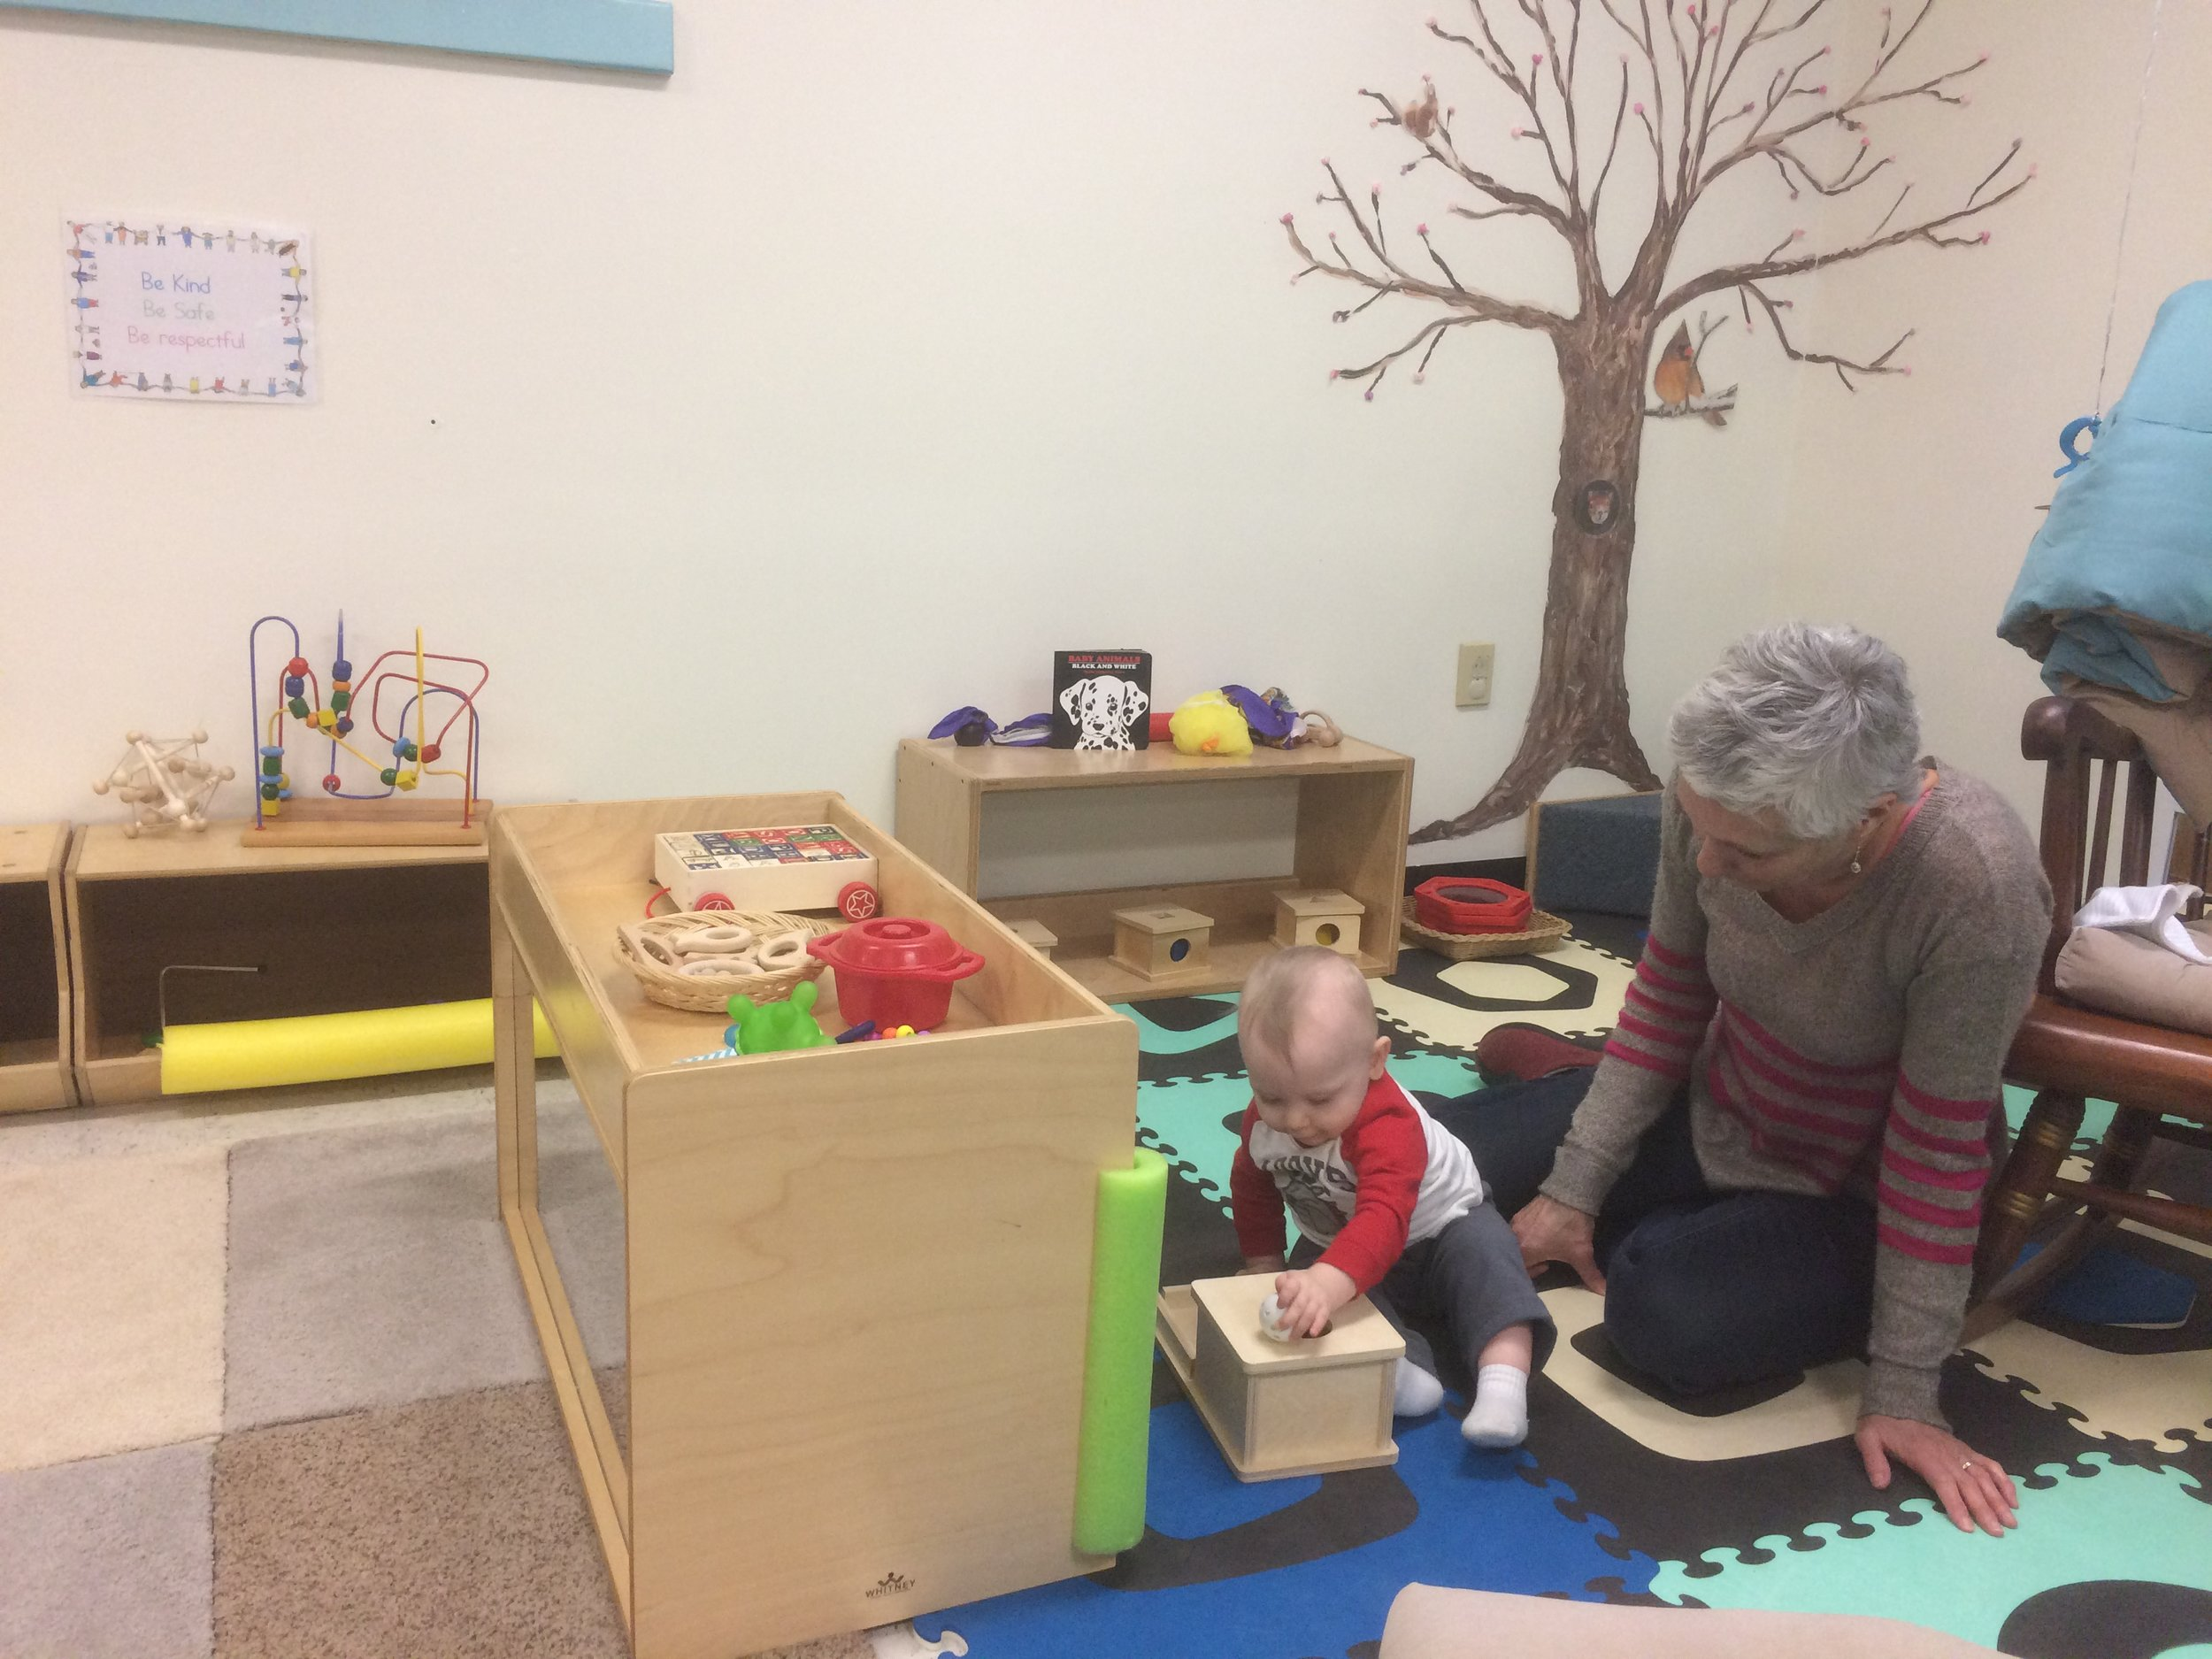 Montessori Toddler student working on the knobbed cylinder block activity. The purpose of this activity is to help develop the child's visual perception of dimension and coordination of movement, as well as strengthen the child's fingers for writing.